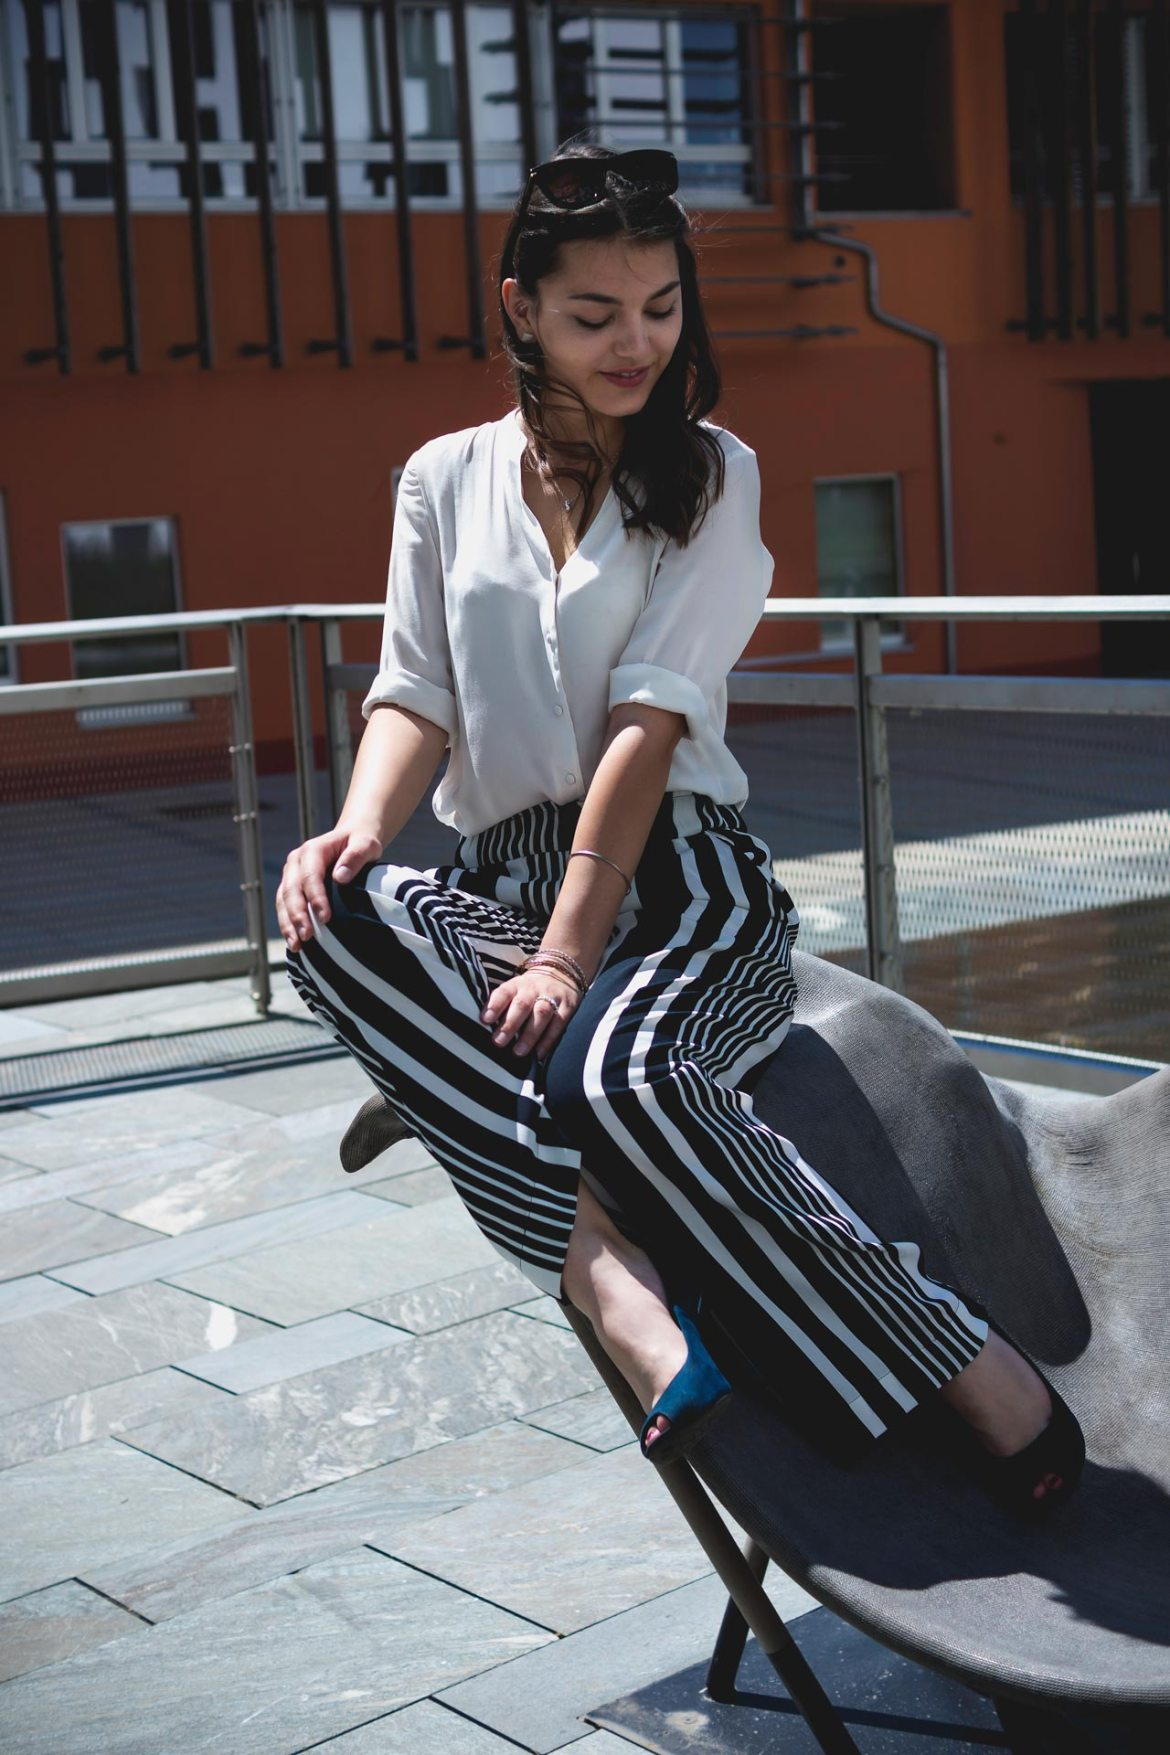 Sitting elegant on a bench, wearing a H&M pull-on-pant